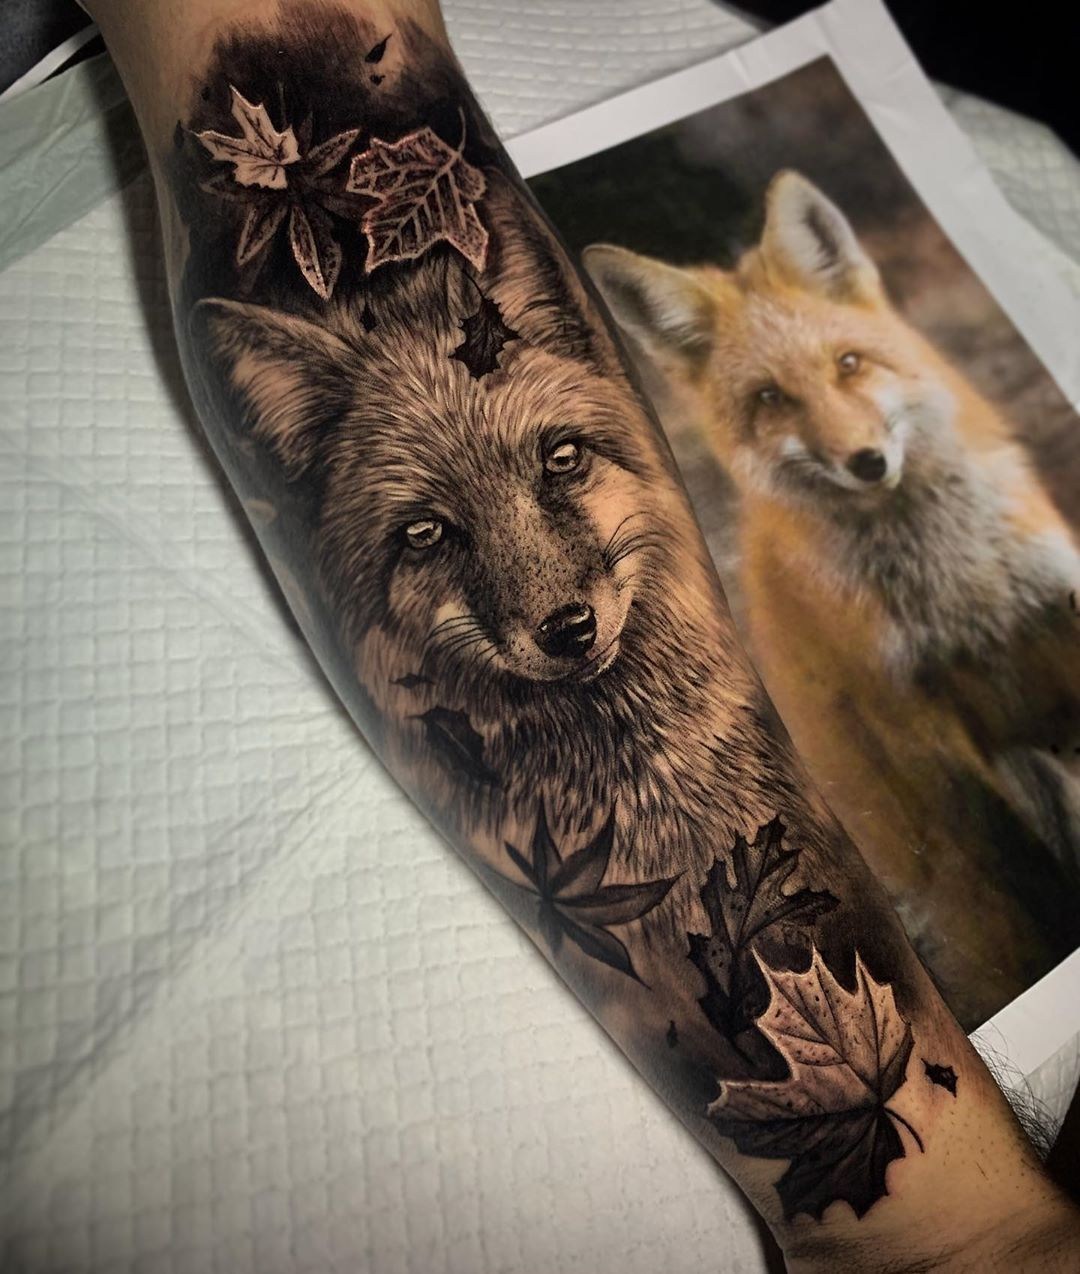 What Does The Fox Say Amazing Realistic Tattoo Made By Dylan Weber In Sydney Australia You Can Find All His Social Media Links On Our Website Check Them O In 2020